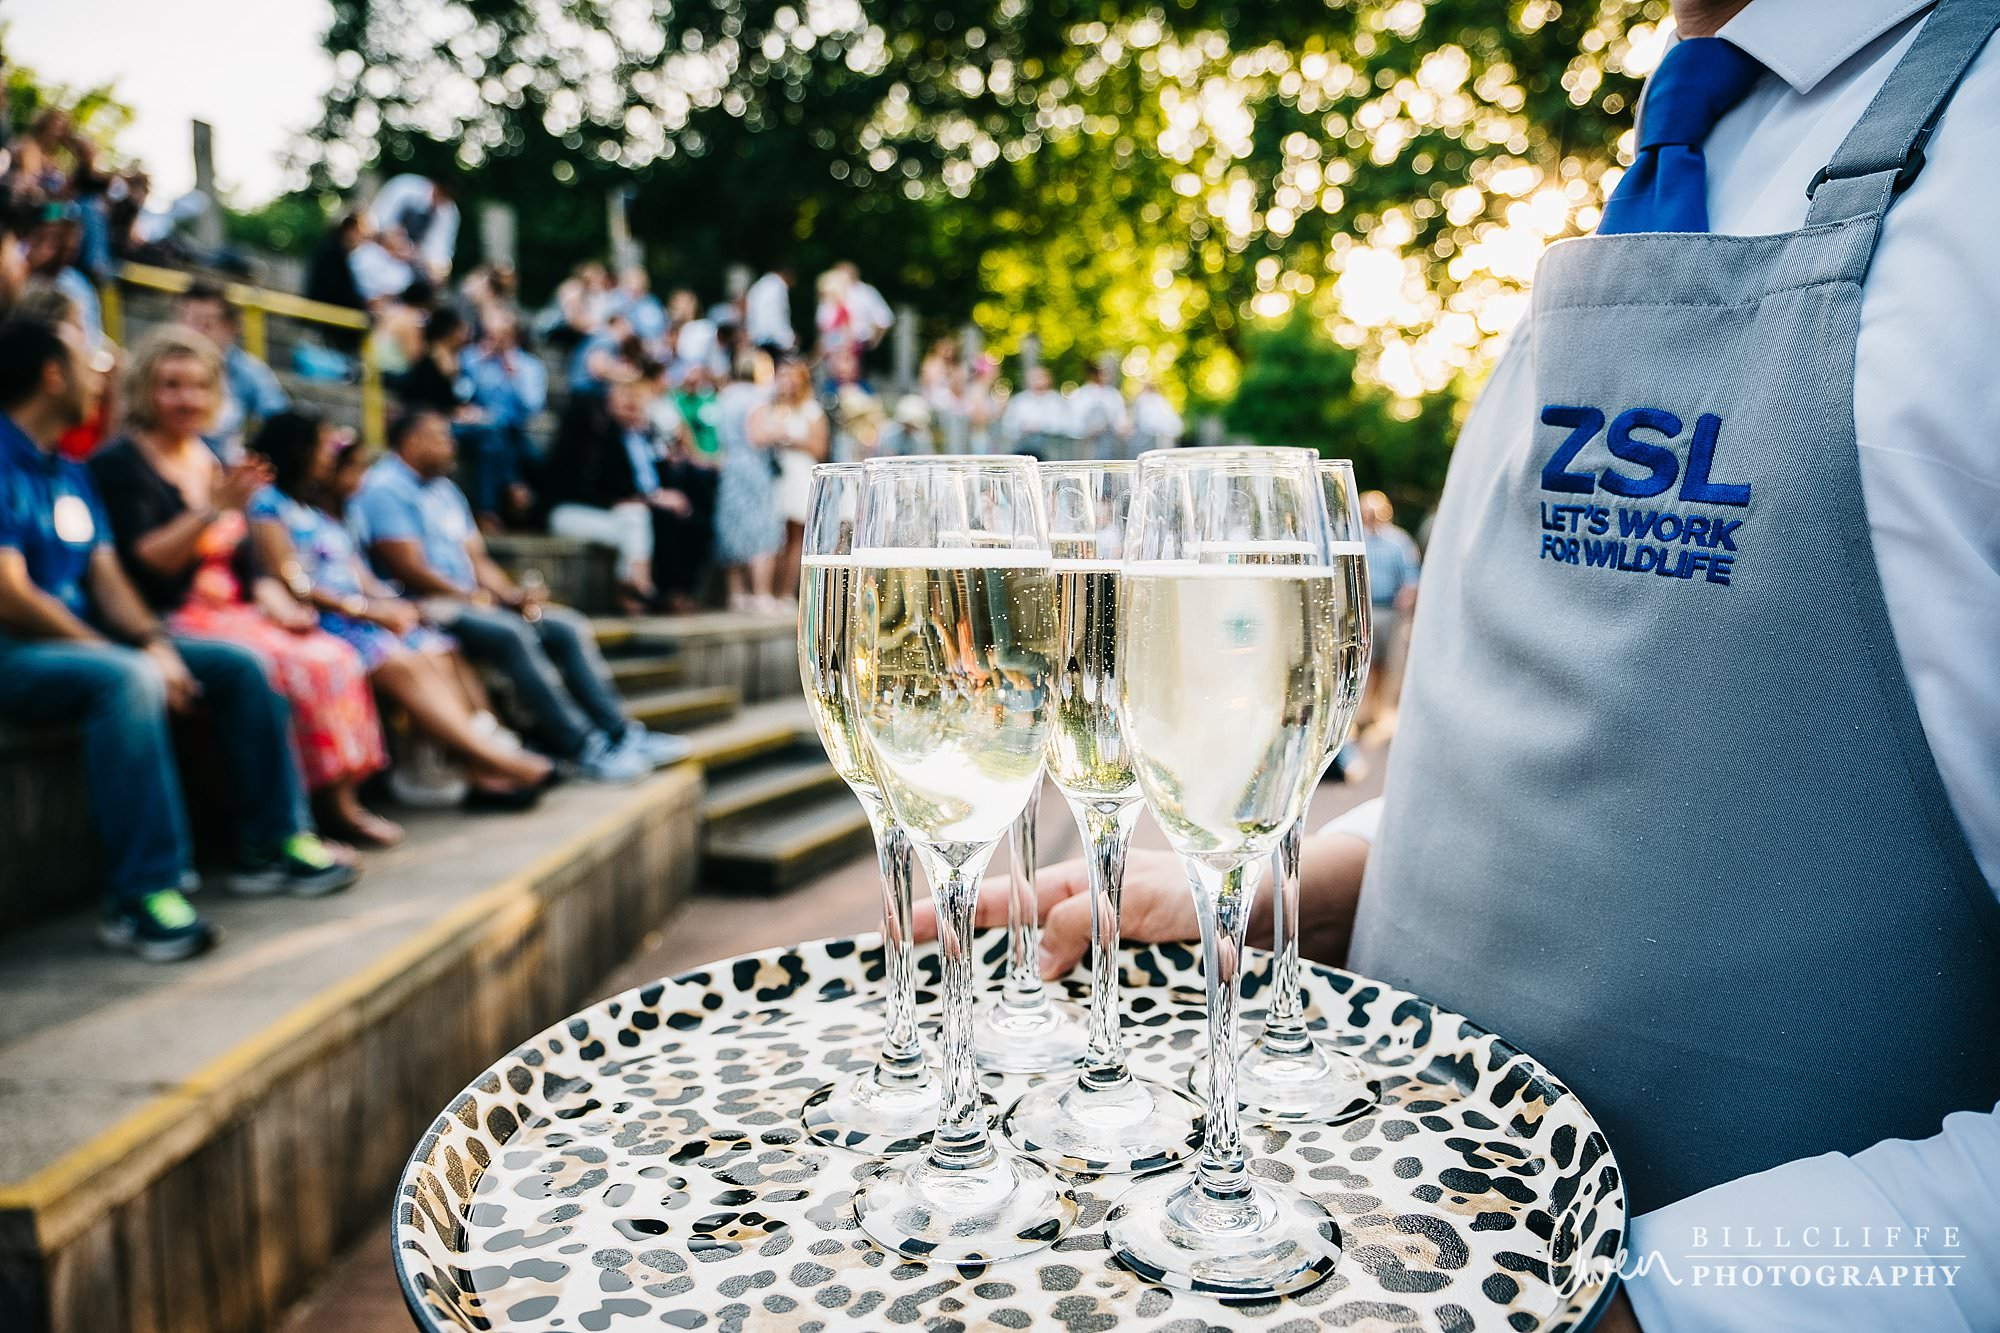 london event photographer zsl london zoo 1706 010 - A Party with the Penguins at London Zoo